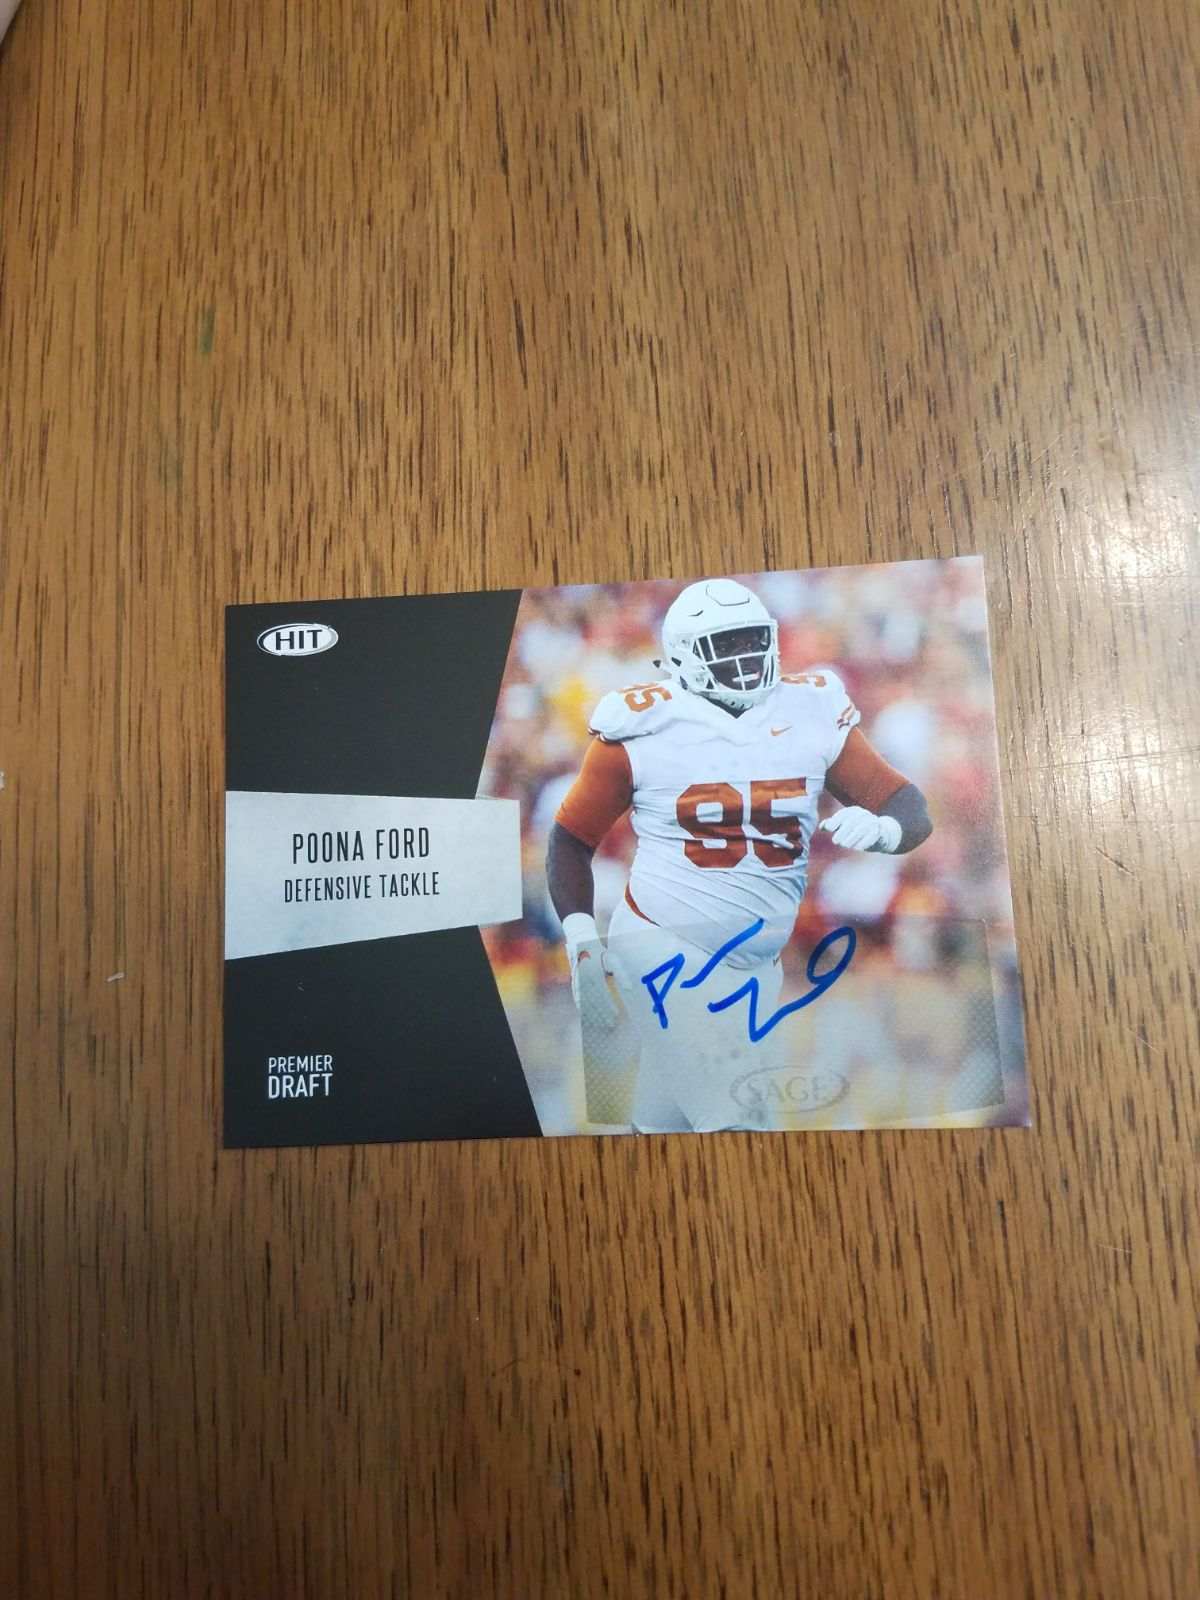 POONA FORD > 2018 SAGE HIT Limited Ed Ro